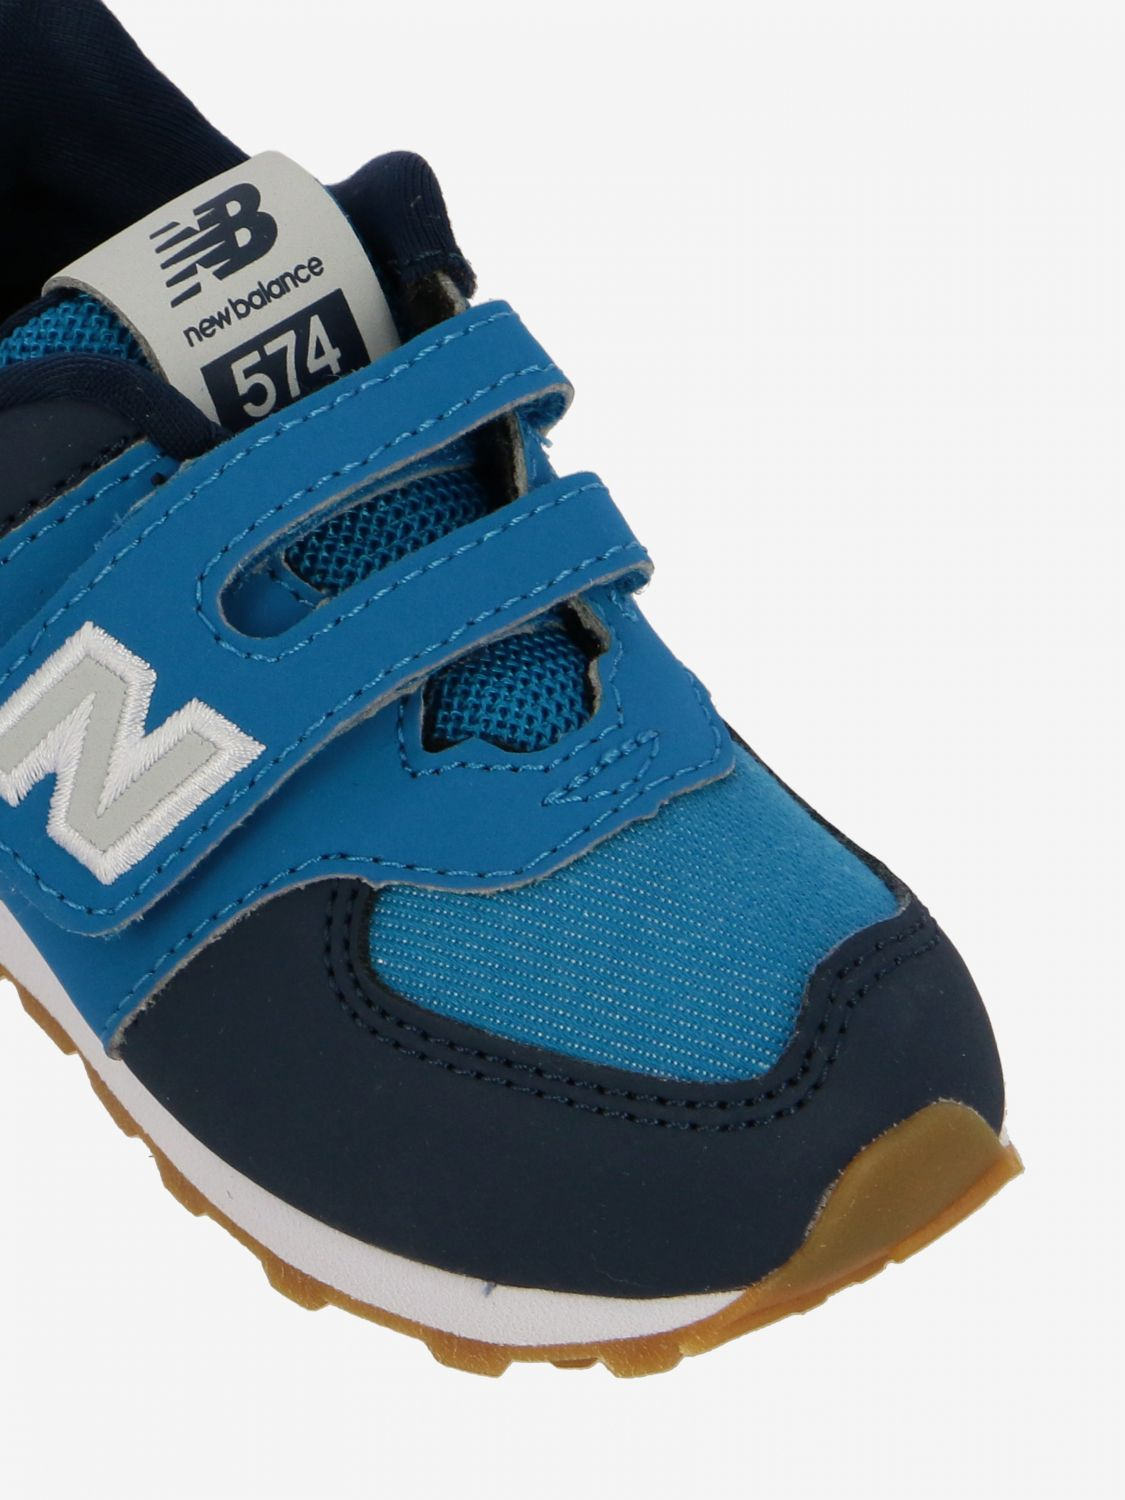 Shoes kids New Balance gnawed blue 4